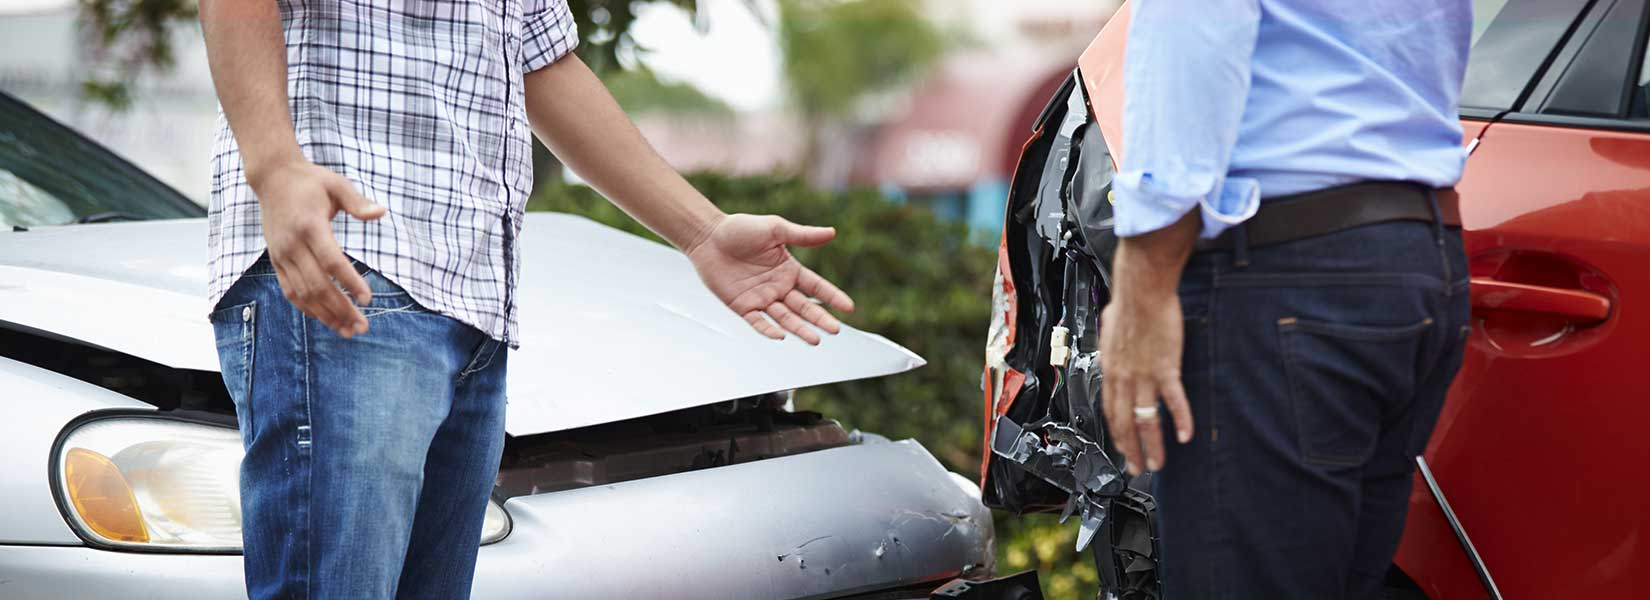 The Accident Report Says It Wasn't My Fault. Do I Still Need a Gilbert Car Accident Attorne?